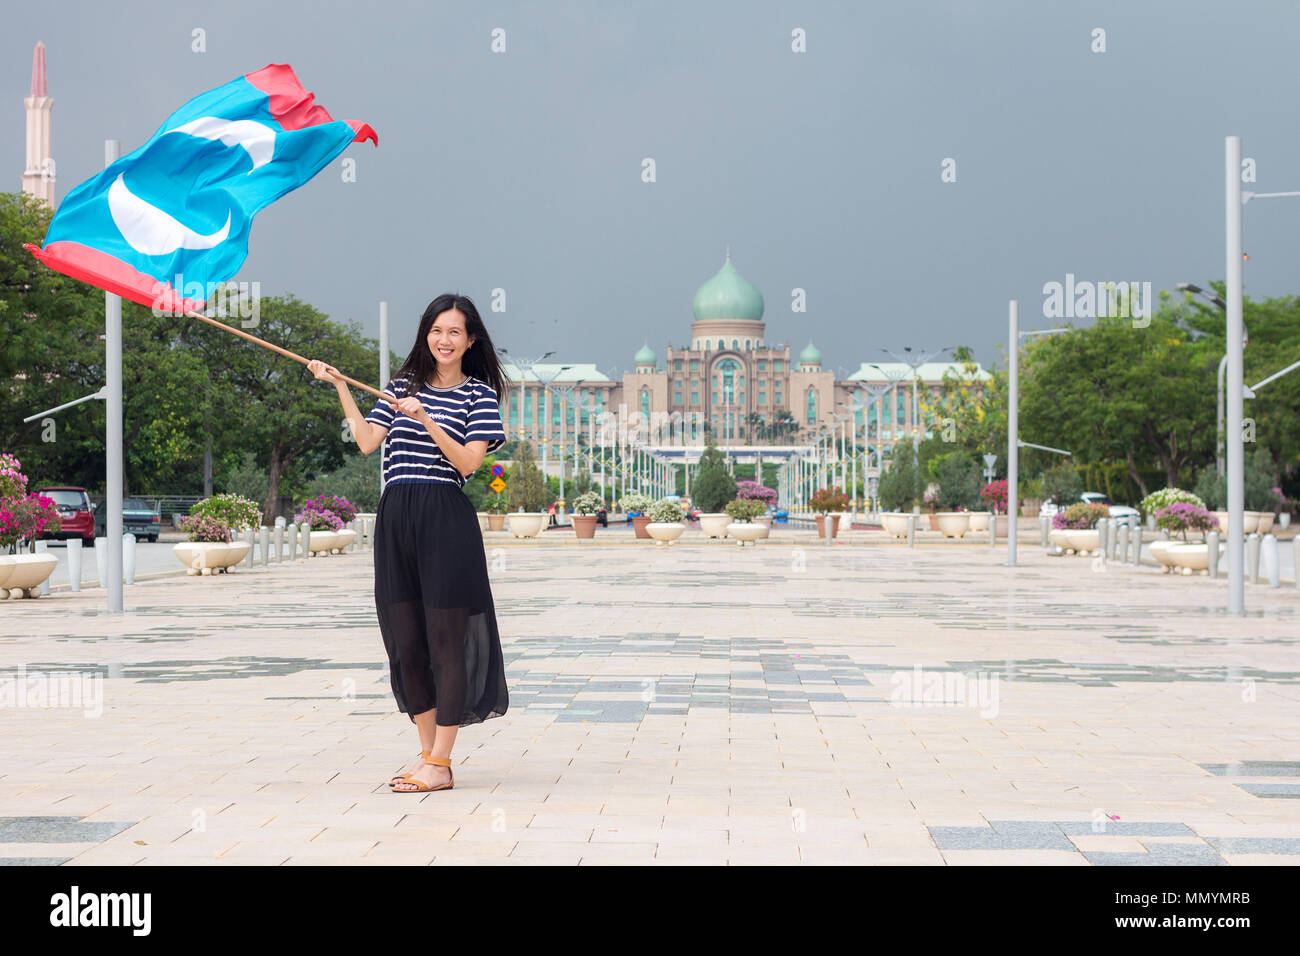 PUTRAJAYA MALAYSIA - 13 May 2018 - a female PKR (Parti Keadilan) supporter happily waving the flag of wining party in front of the government administ - Stock Image